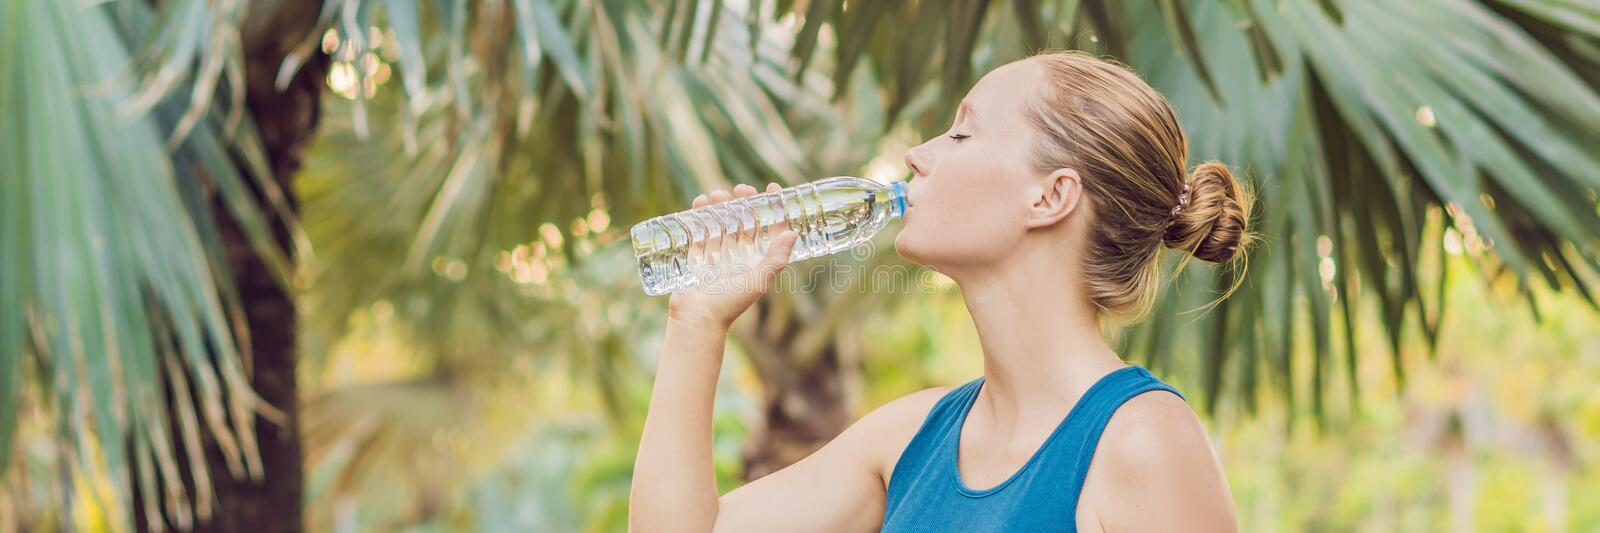 Attractive sporty woman drinking water from a bottle after jogging or running BANNER, long format. Attractive sporty woman drinking water from a bottle after royalty free stock photo